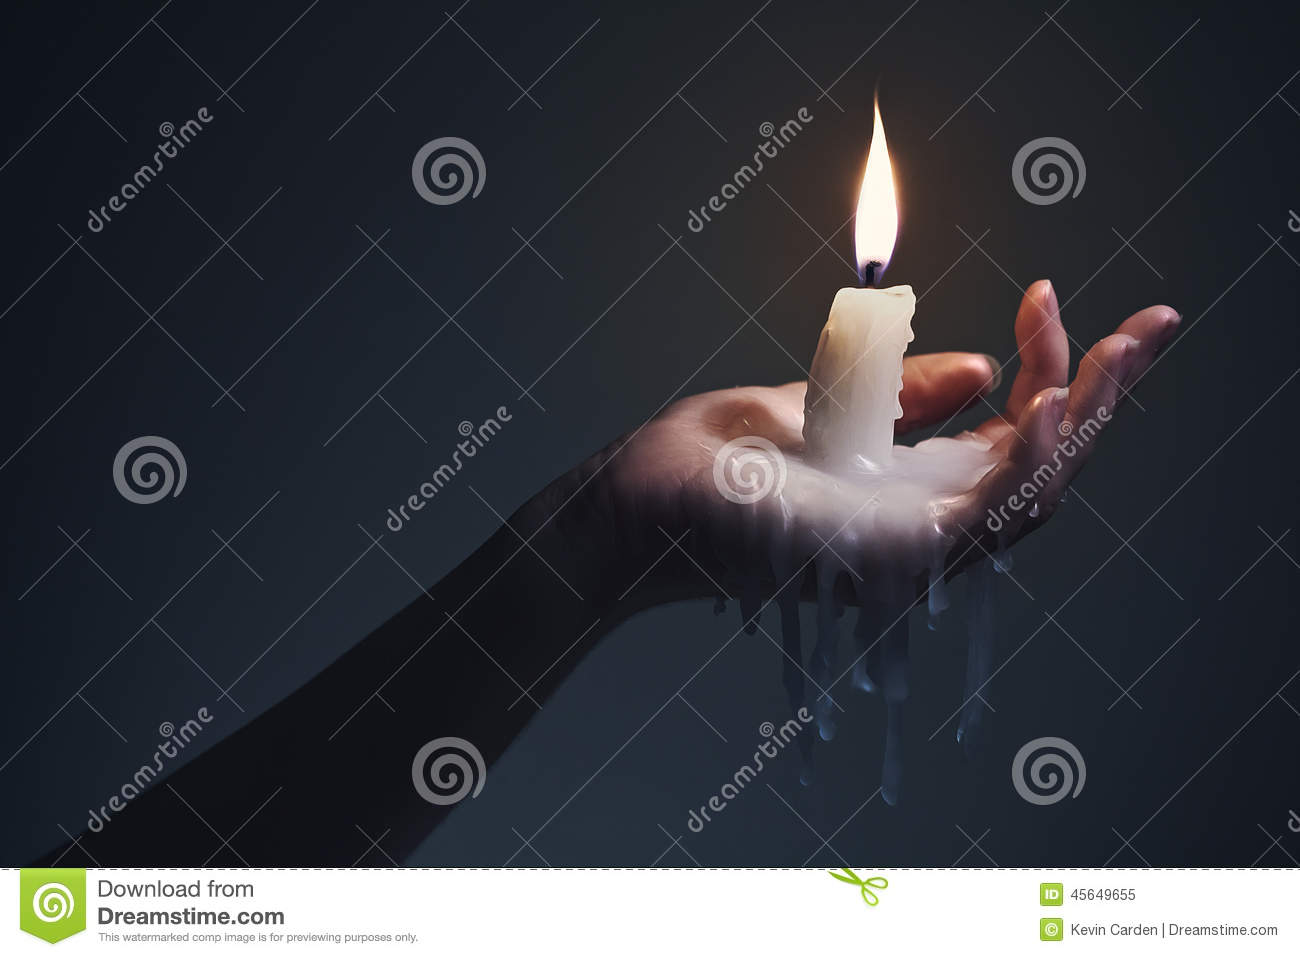 Holding A Candle On A Dark Background. Stock Image - Image of ... for Holding Candle In The Dark  599kxo